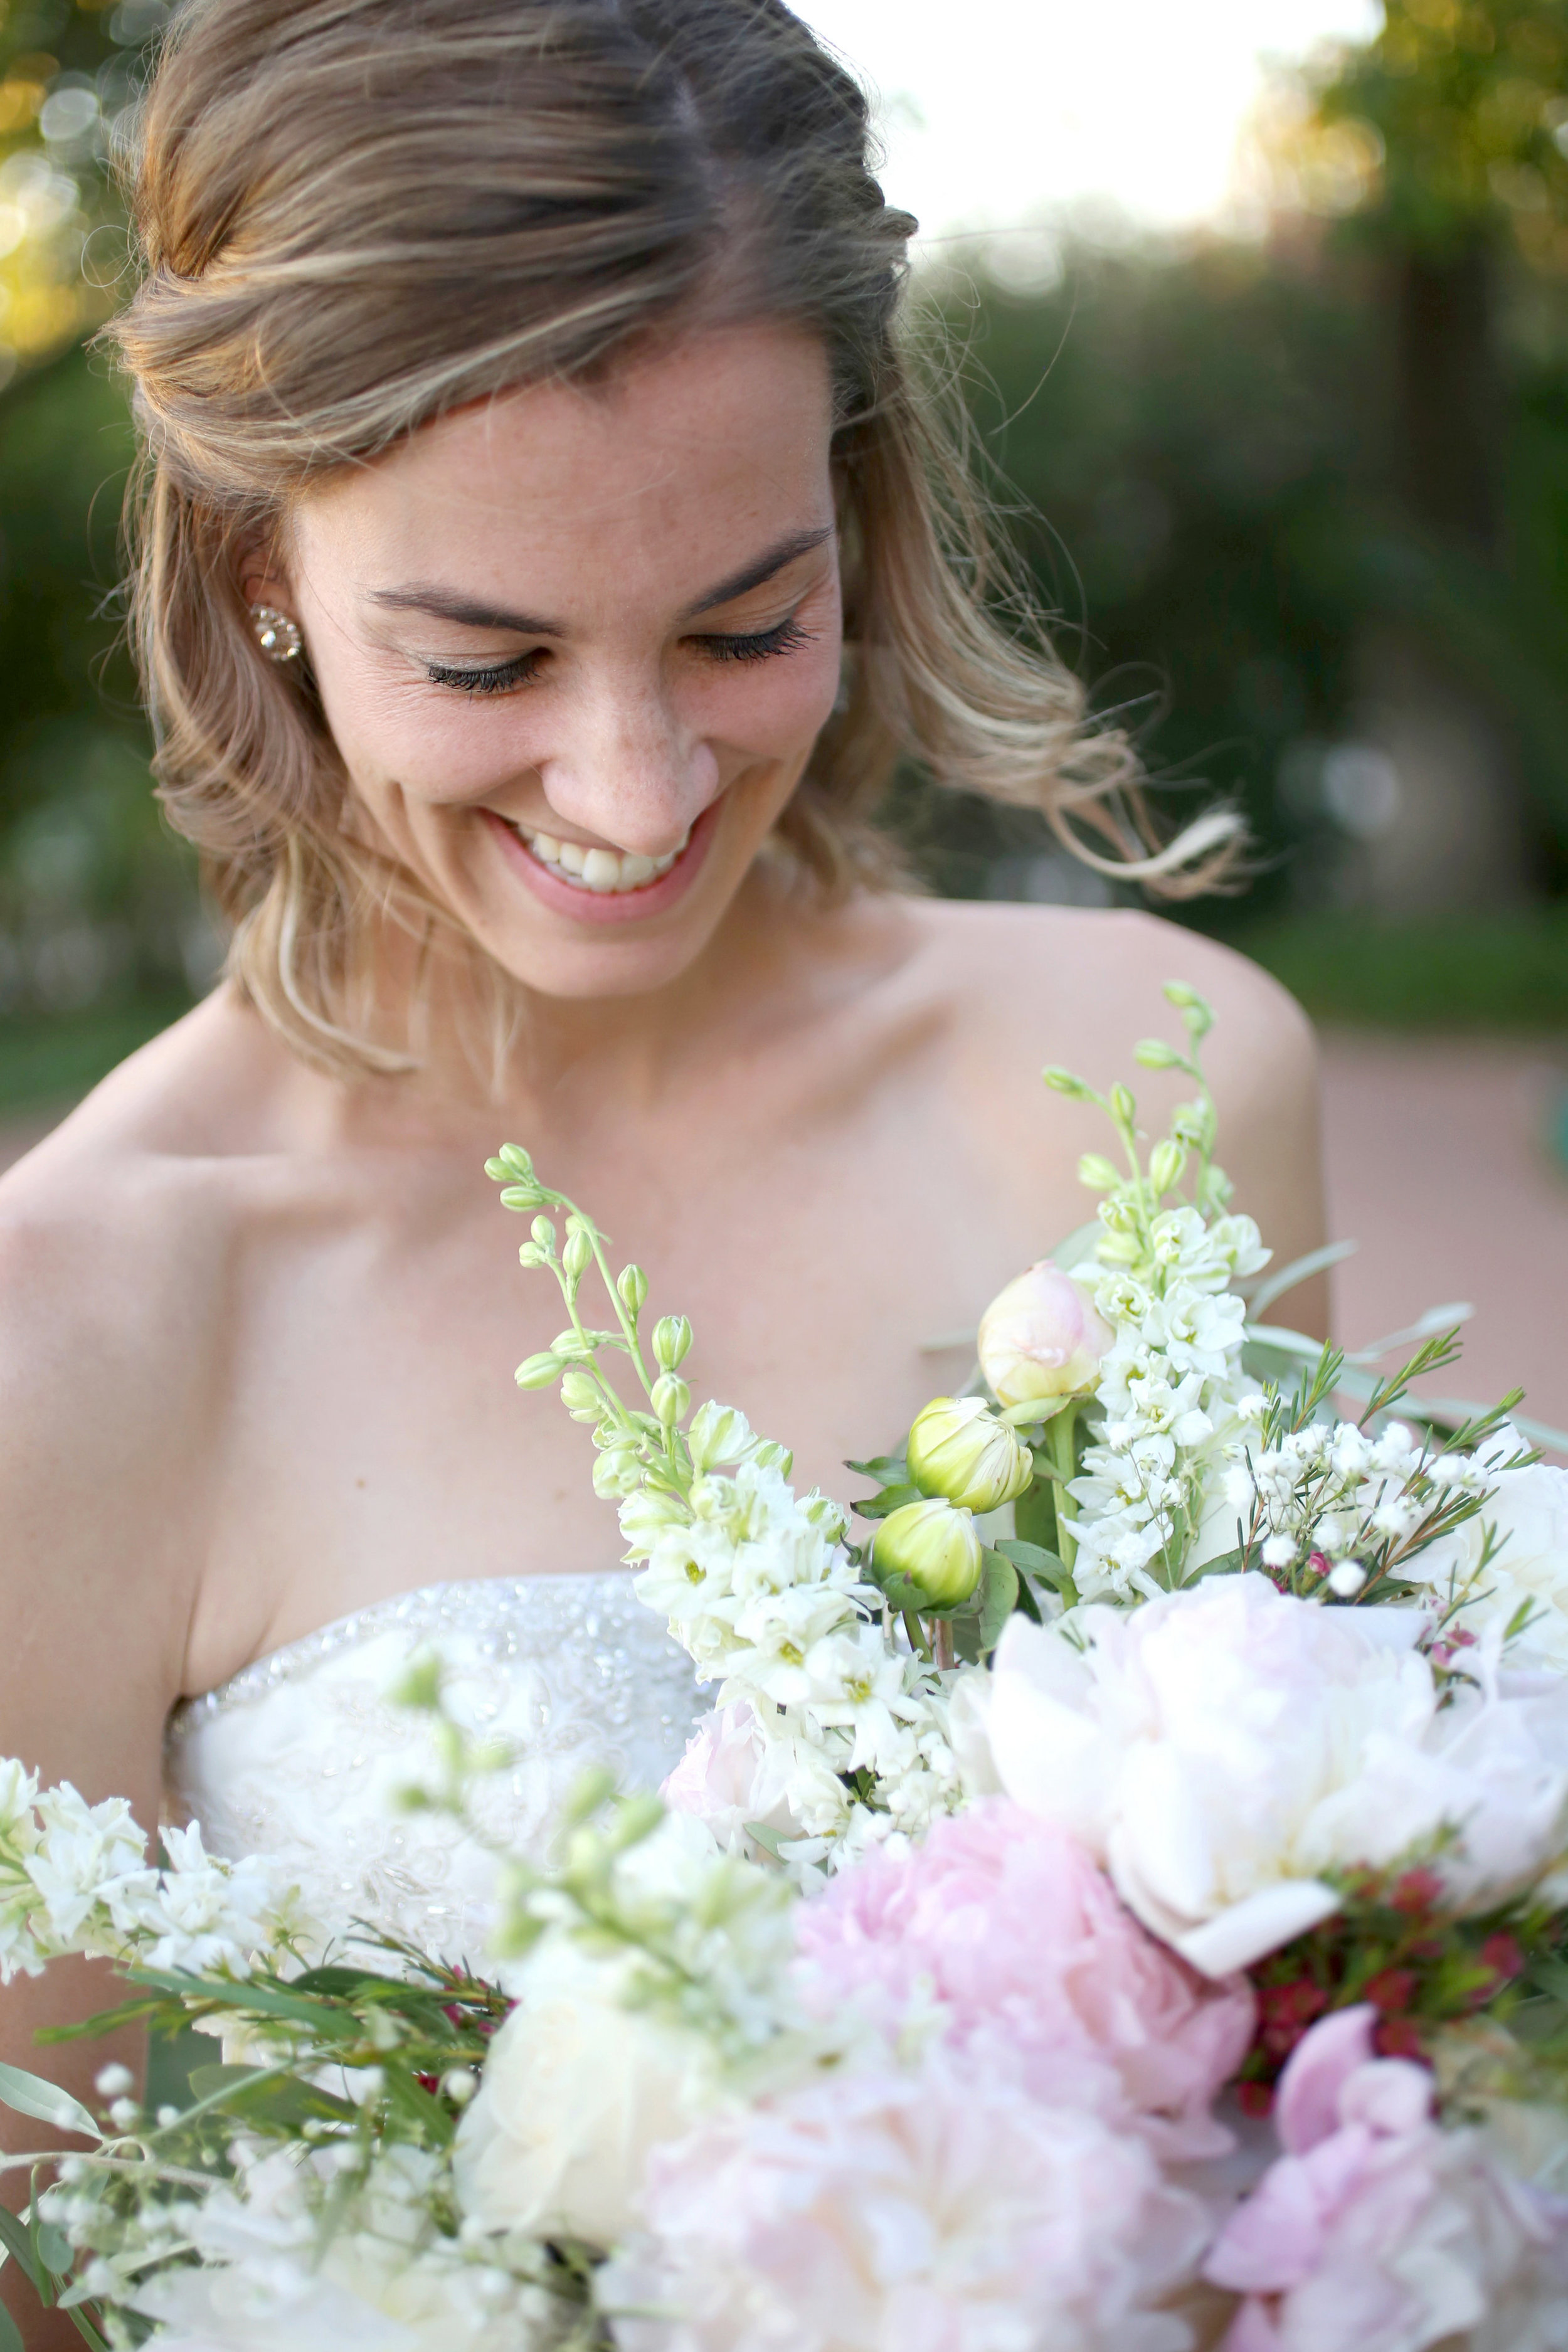 Styled Shoot Tucson Museum of Art-Styled Shoot 5 24 16 Tucson Museum o-0202.jpg